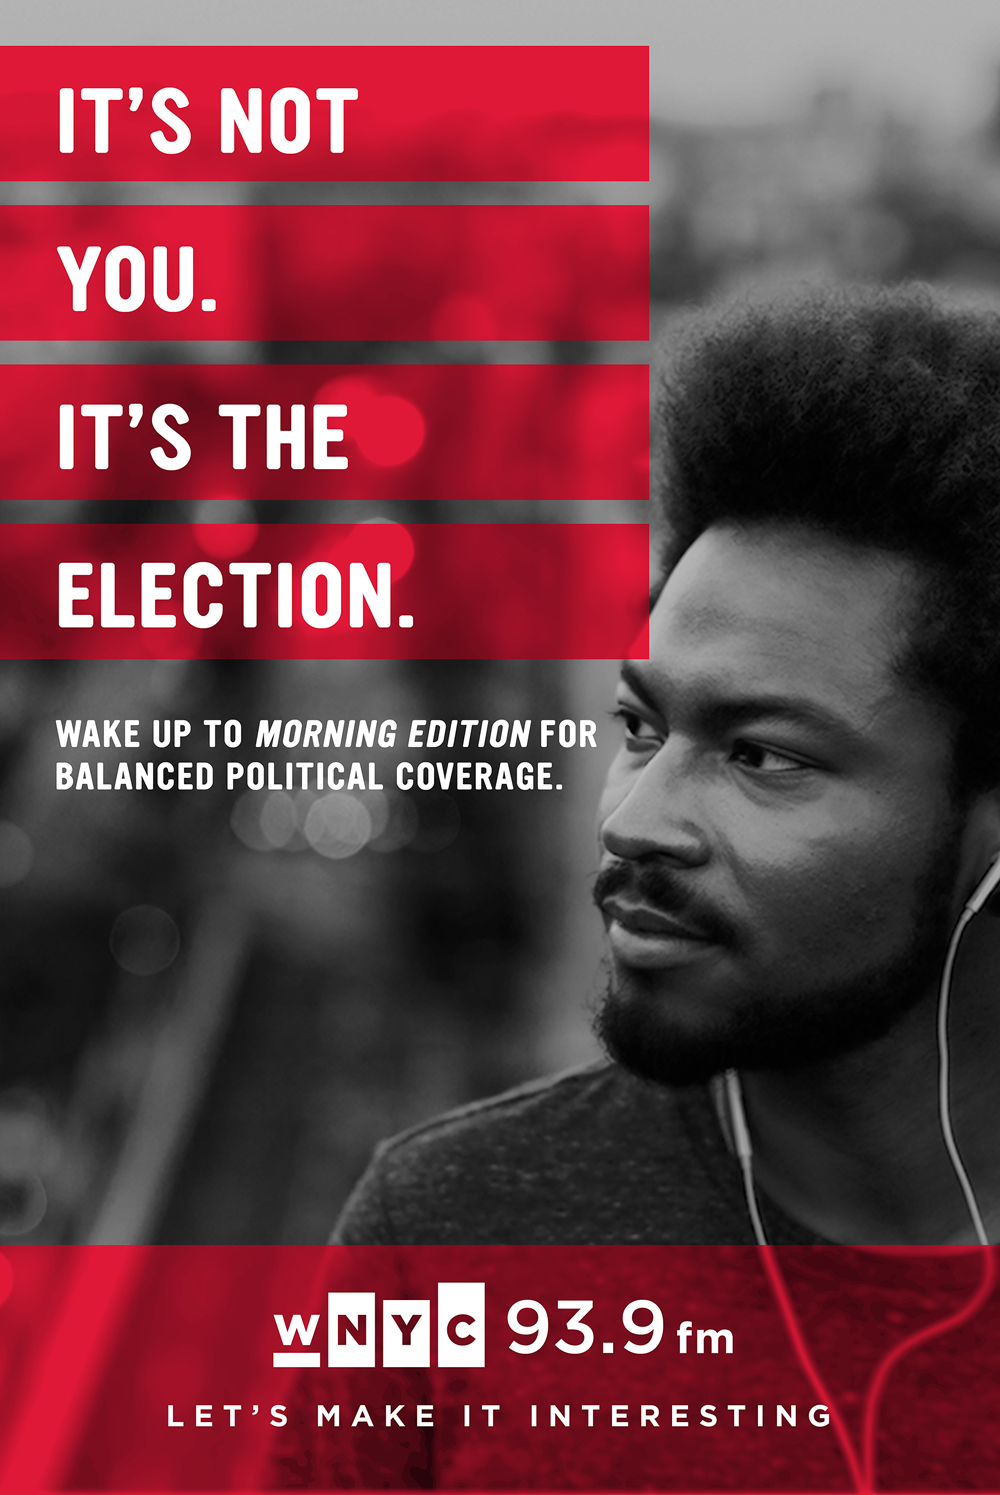 WNYC_Campaign_NotYou.png